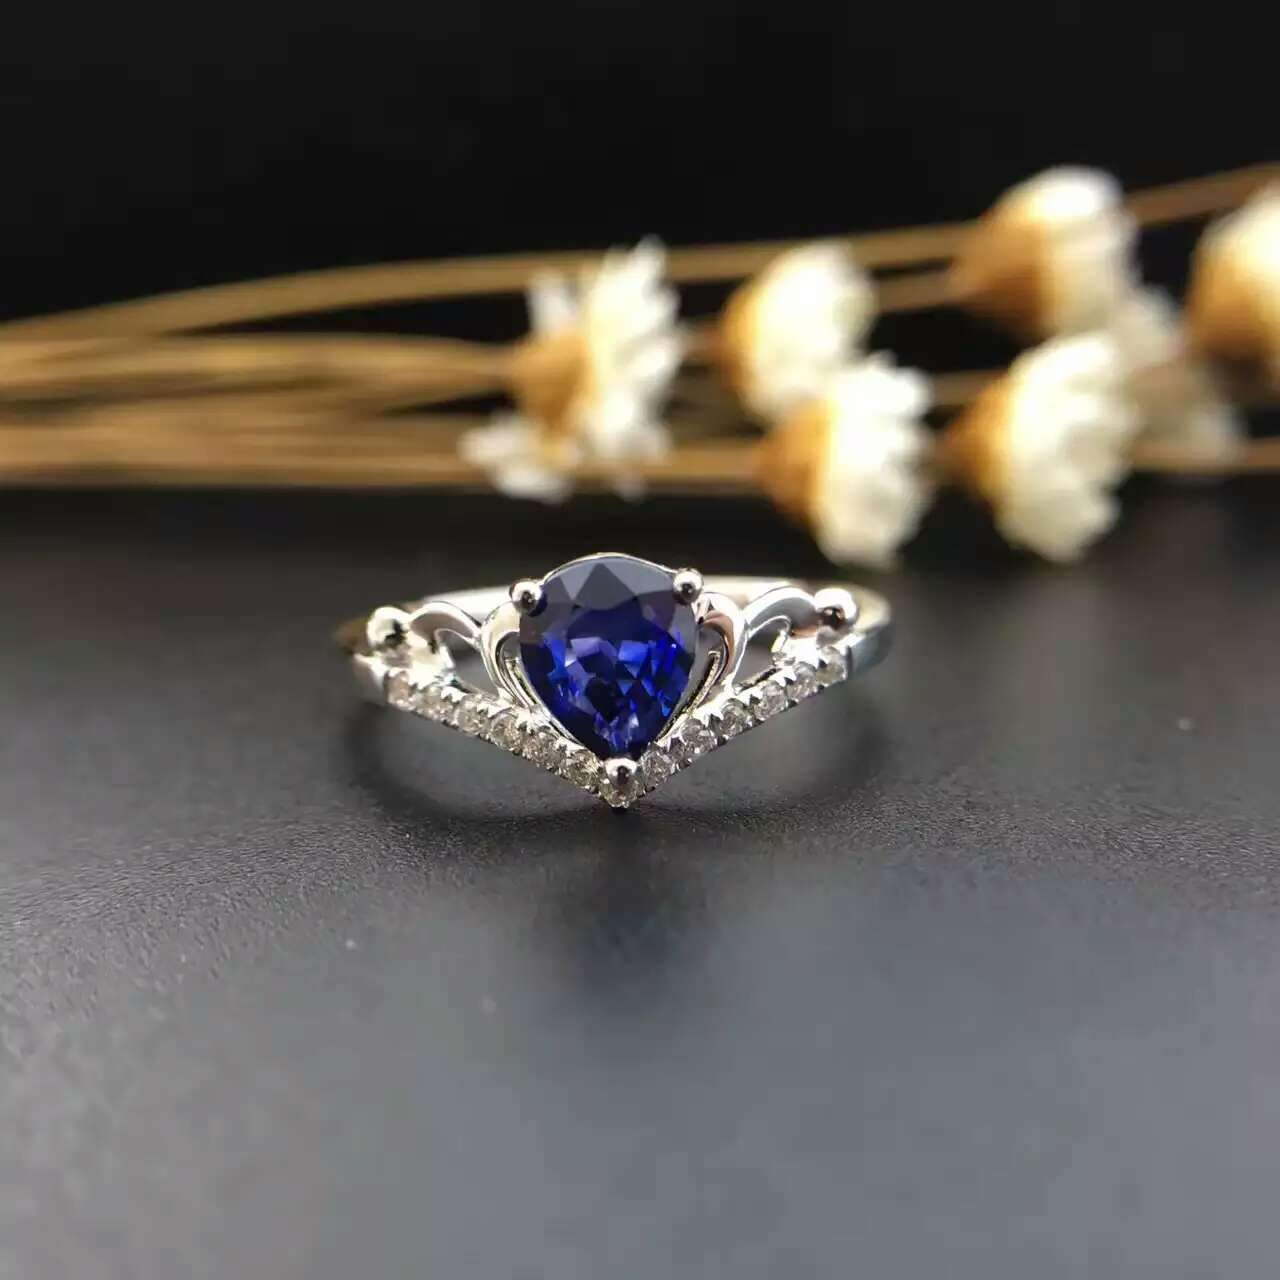 0.579ct+0.084ct 18K Gold Natural Sapphire Women Ring with Diamond Setting 2016 New Fine Jewelry Wedding Band Engagement